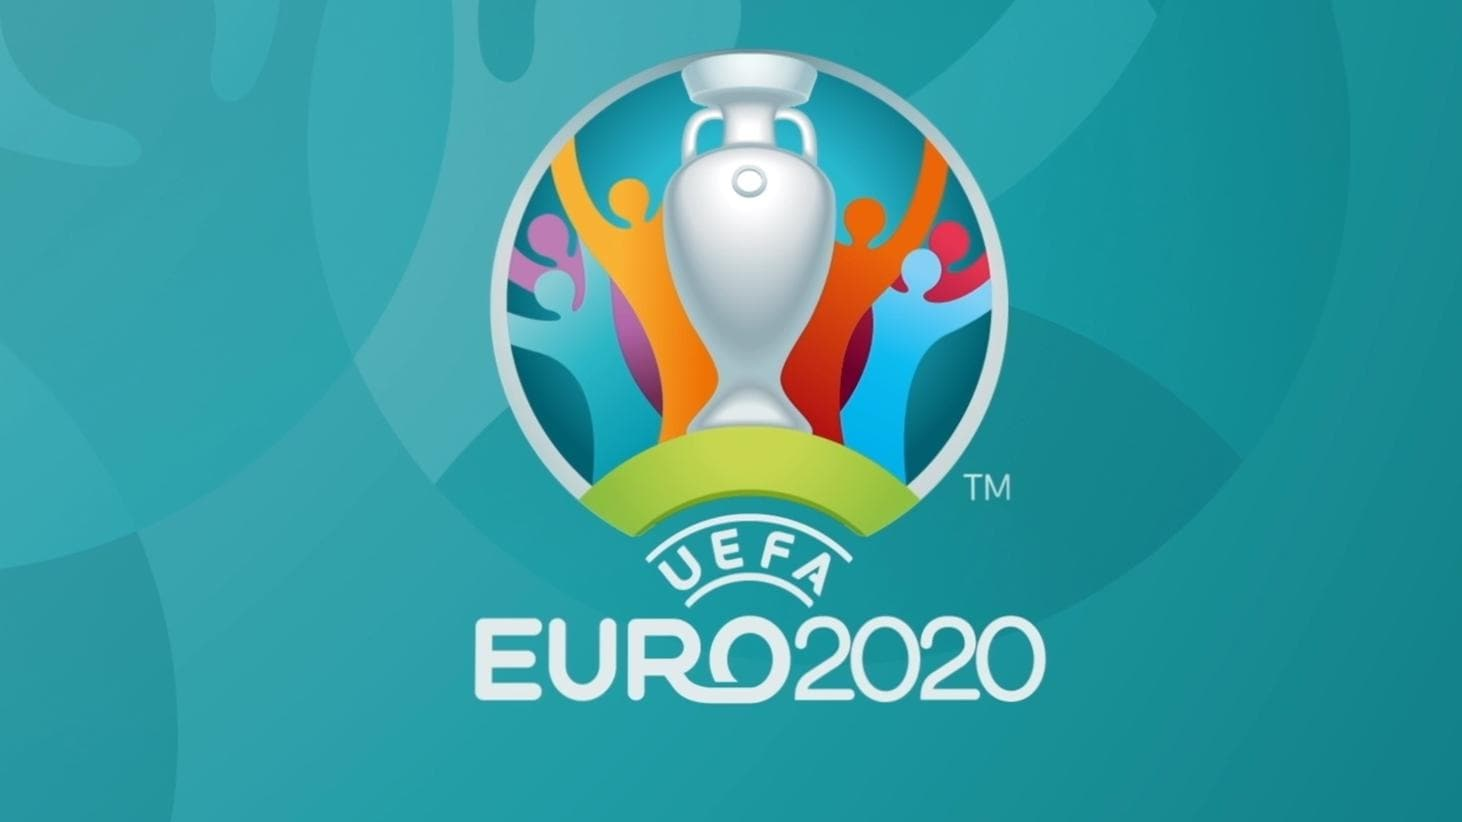 Euro 2020 Calendrier.All You Need To Know About Uefa Euro 2020 Uefa Euro 2020